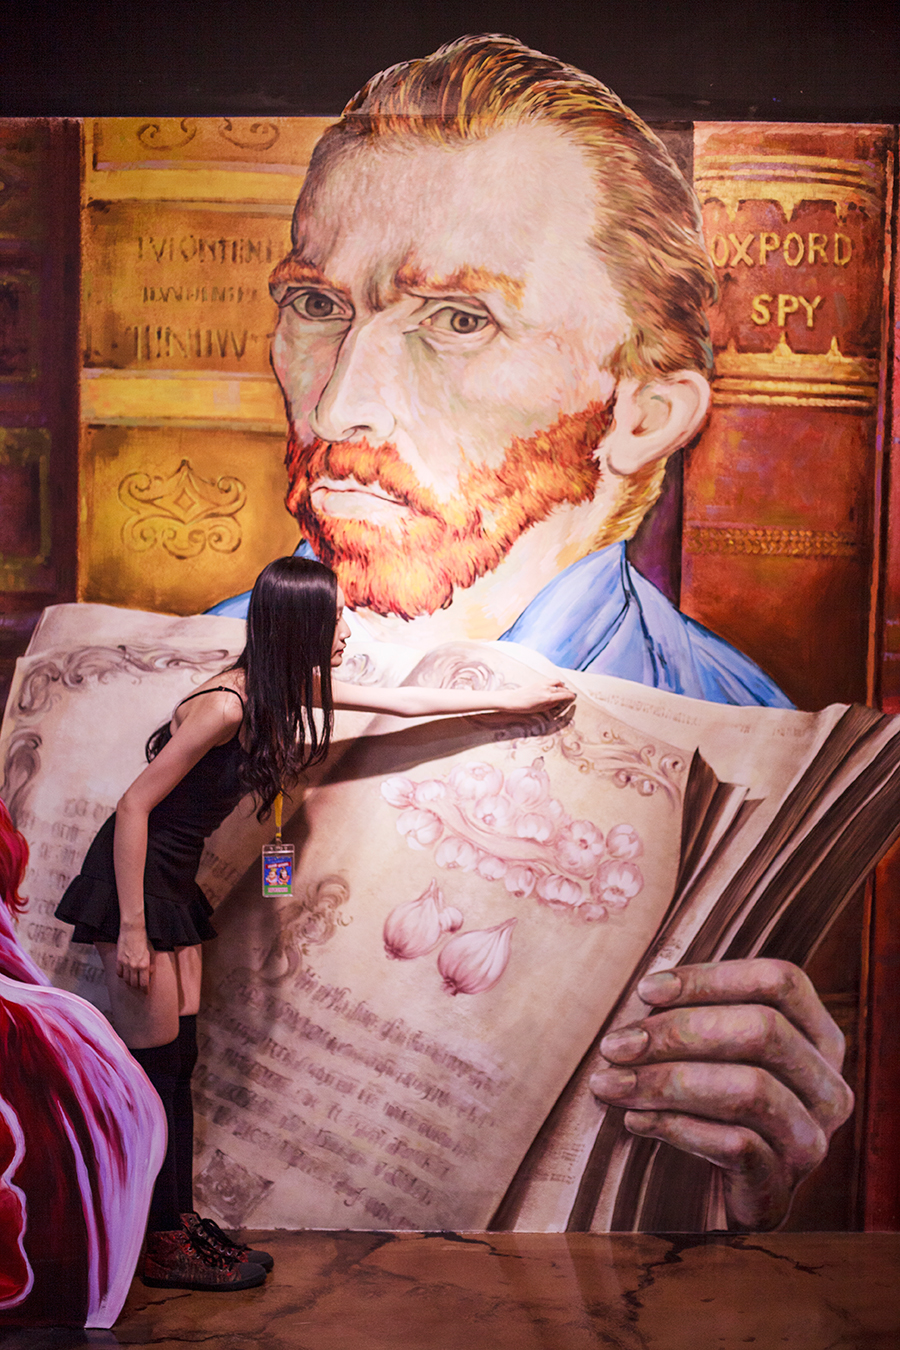 Turning a page of Vincent Van Gogh's book trompe-l'œil at the Trick Eye Museum Renewal Event in Singapore, Resorts World Sentosa.